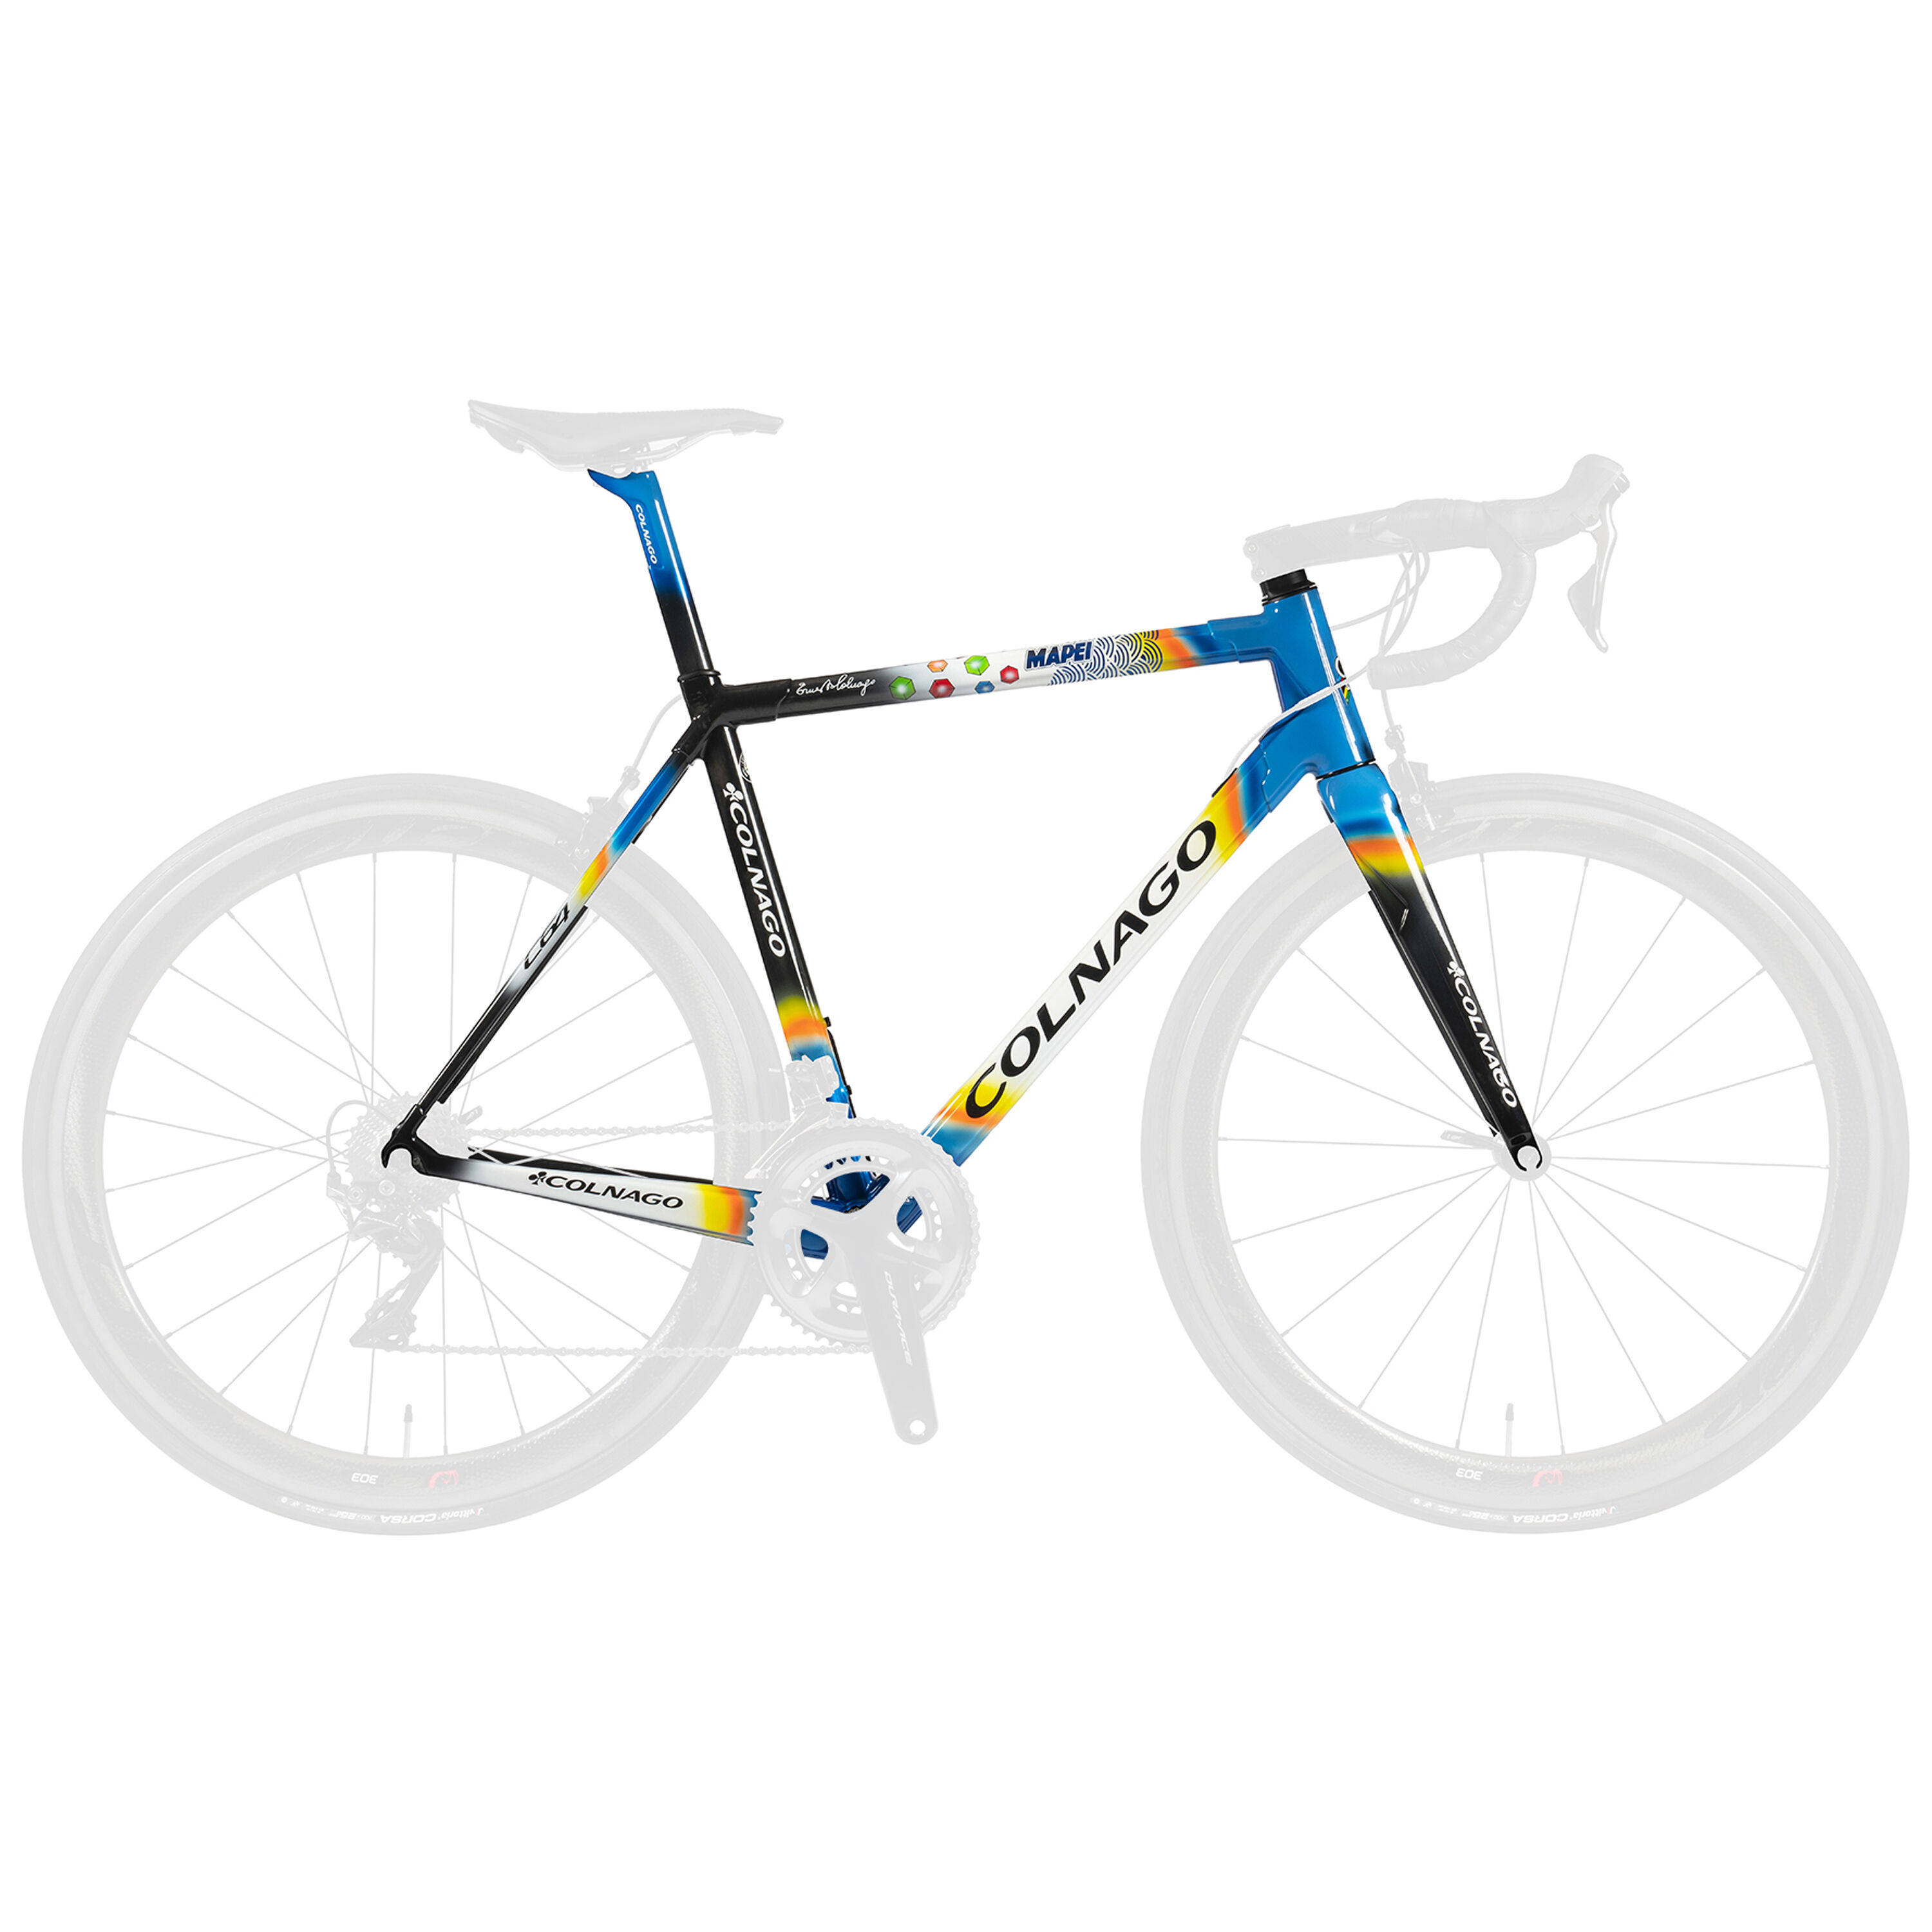 Colnago C64 Direct Mount Mapei frame 2019